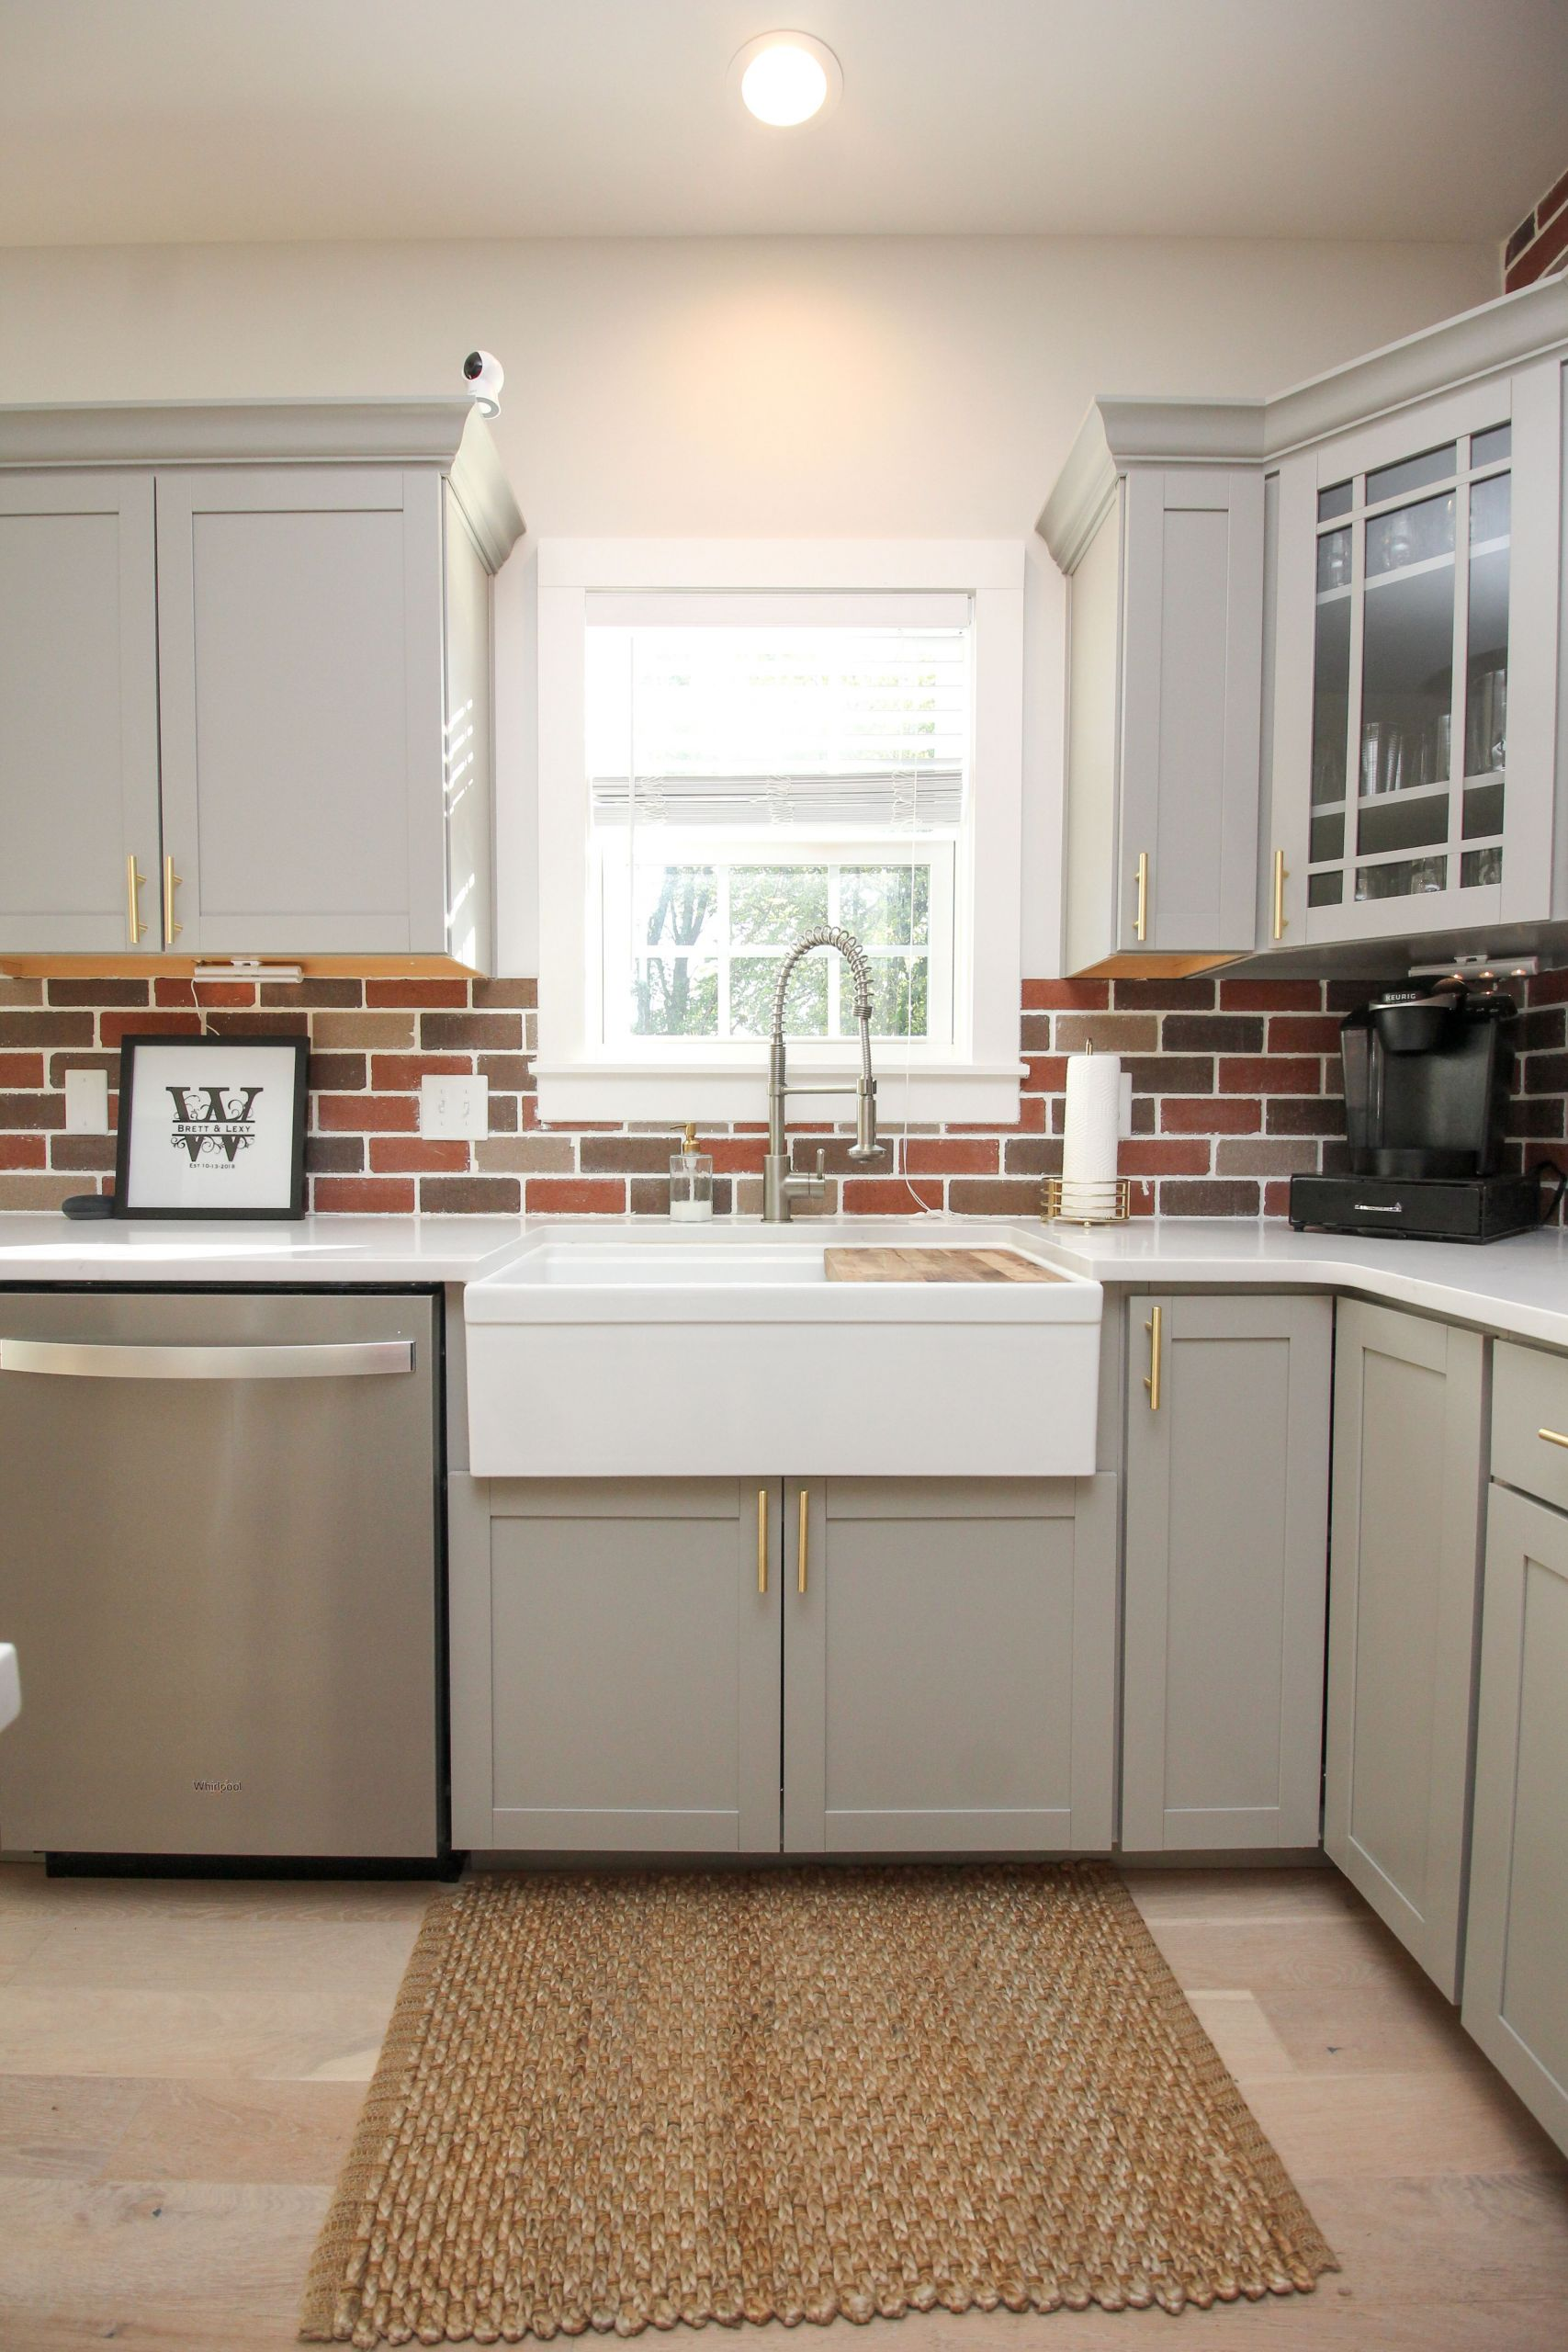 Kitchen with Brick Backsplash Luxury Farmhouse Kitchen Sink with Brick Backsplash Stainless